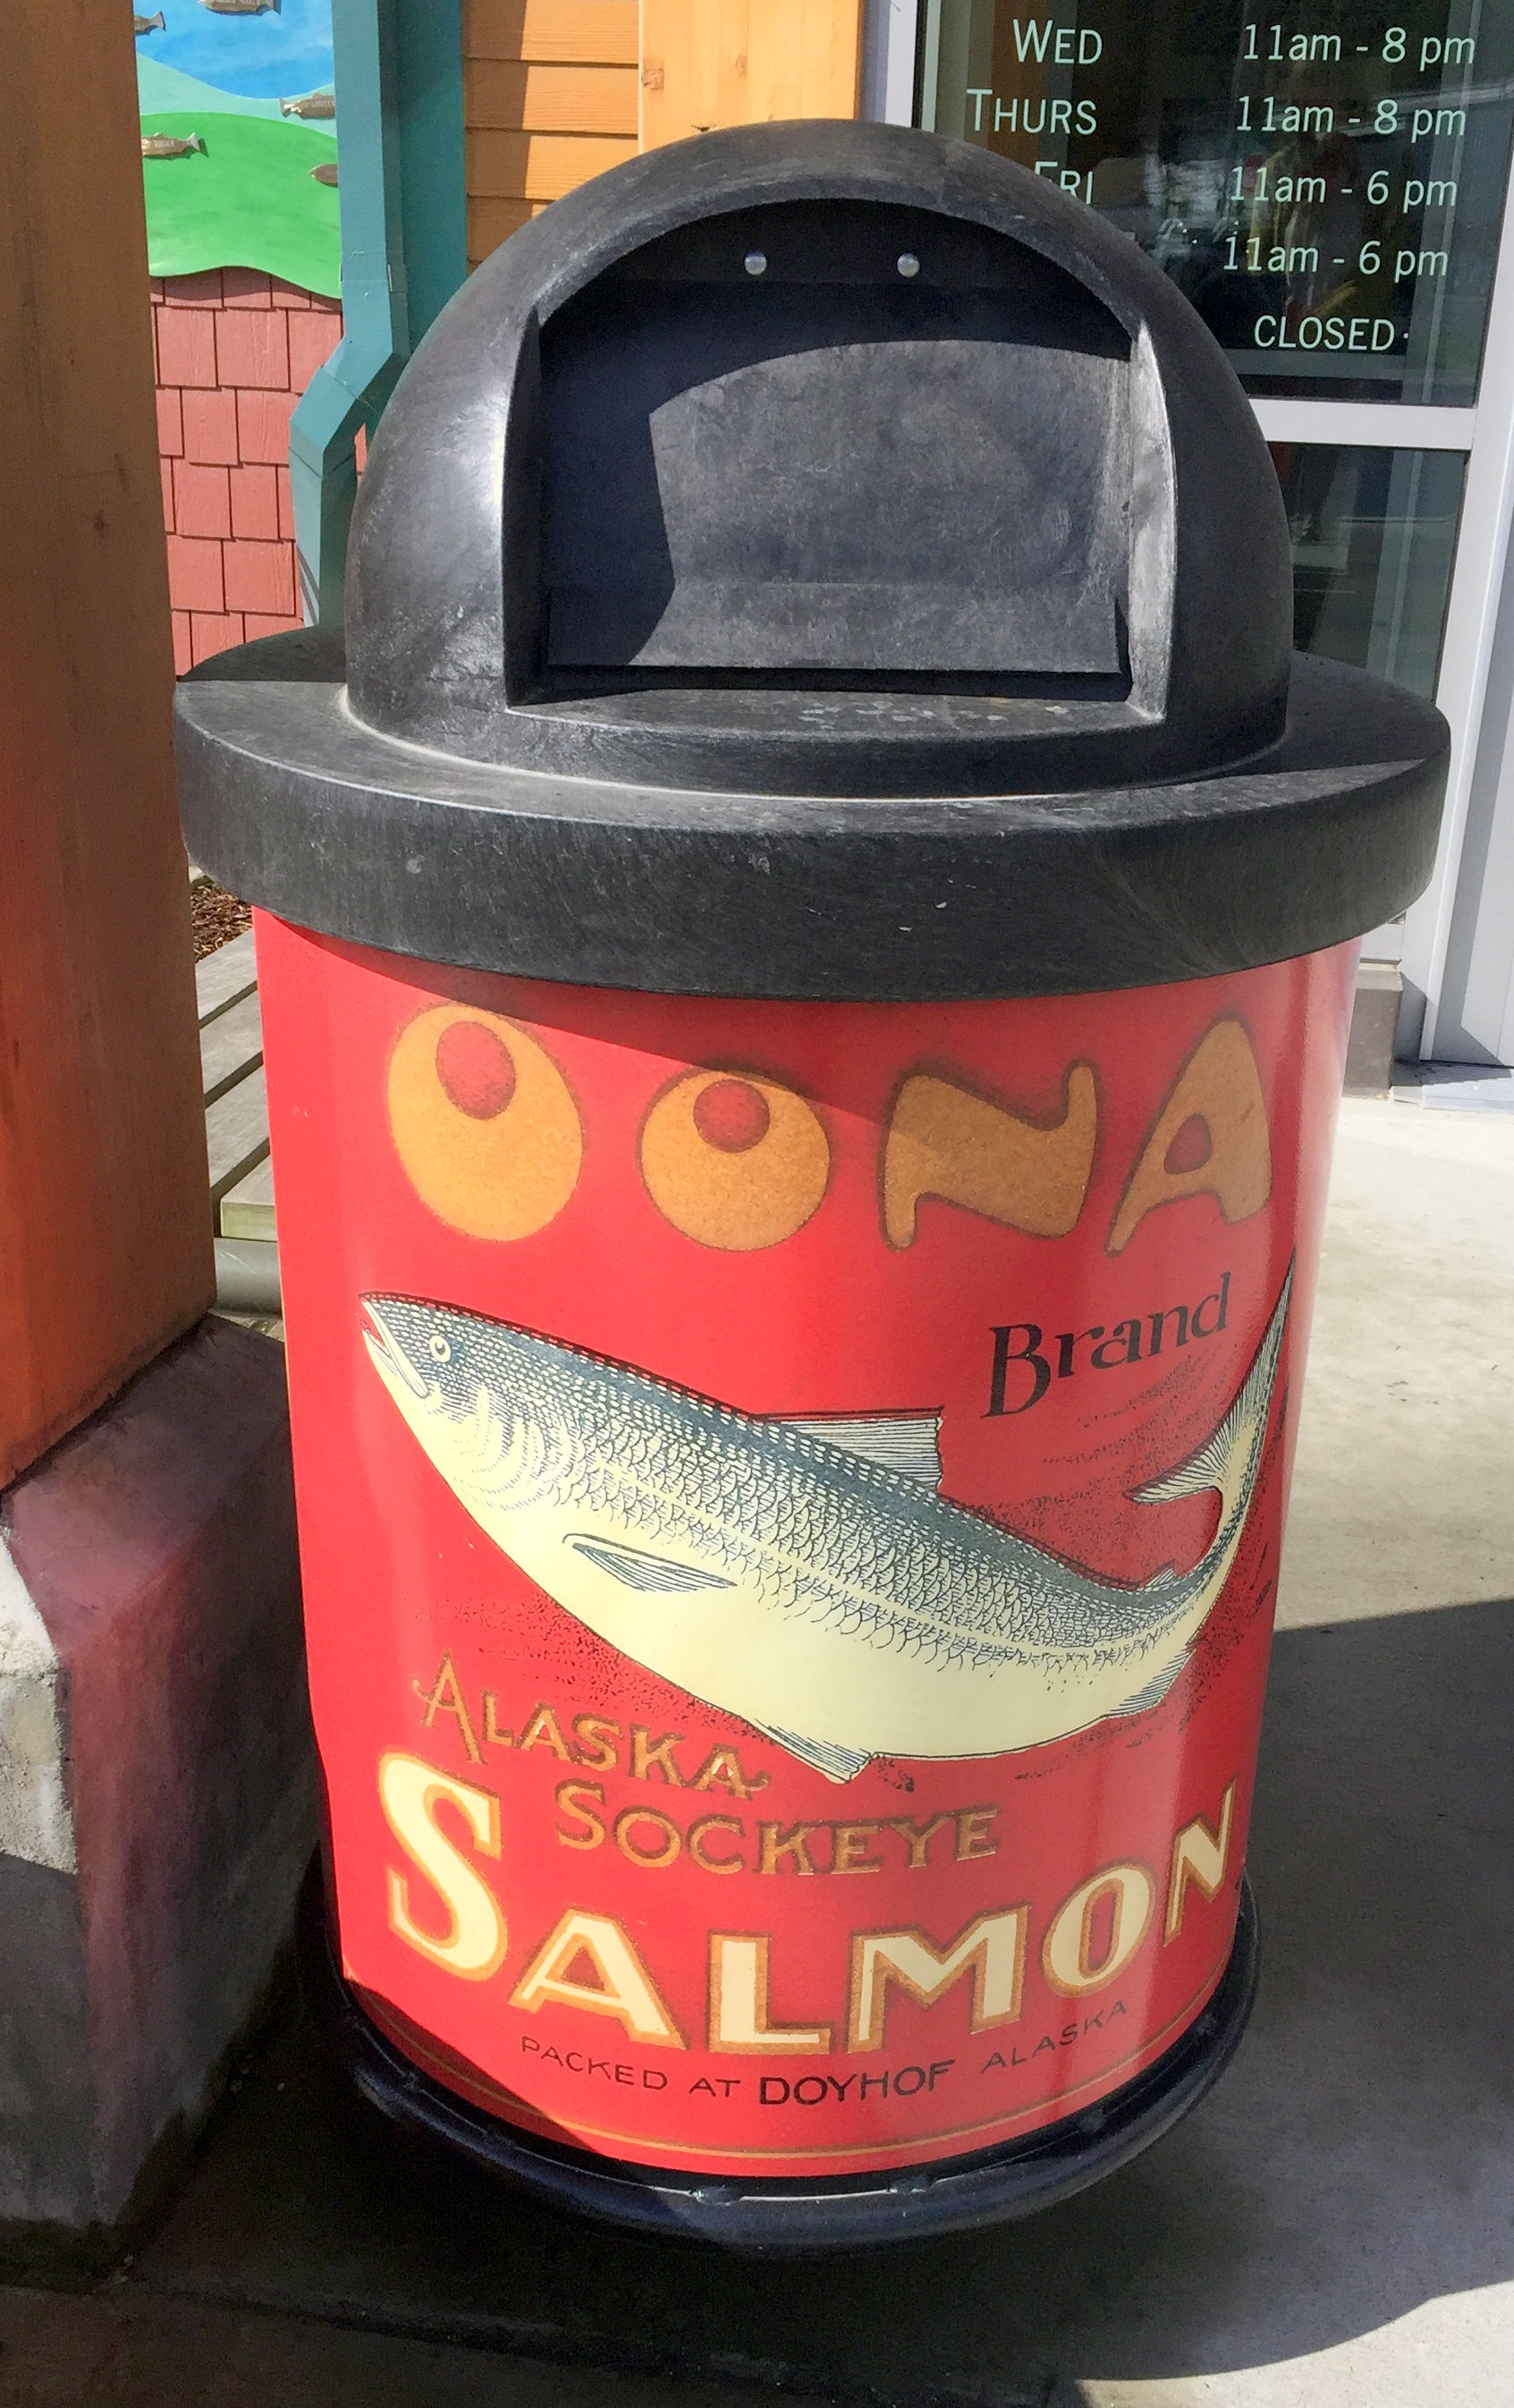 HISTORIC SALMON CAN Oona/Doyhof Cannery